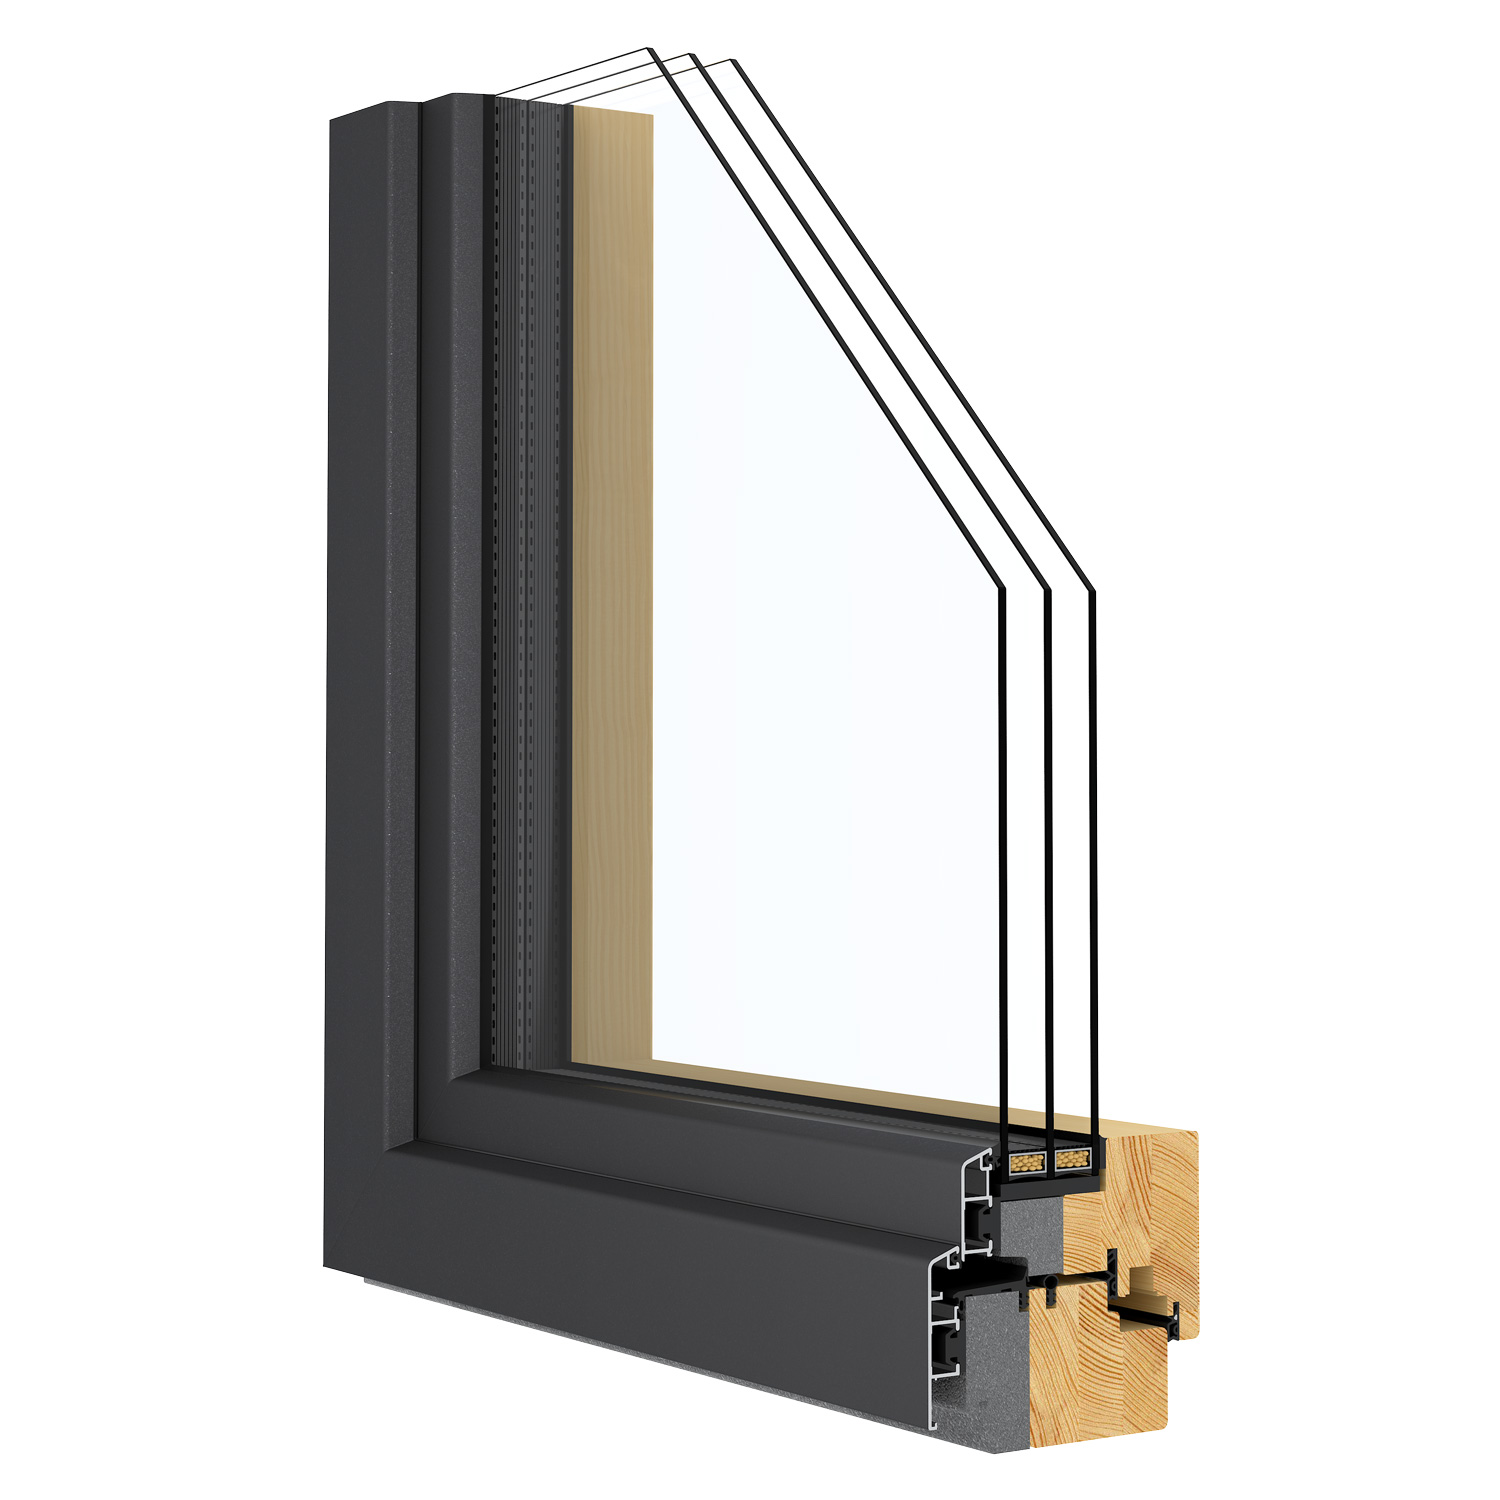 R-9 Zola ZNC™ window rendering